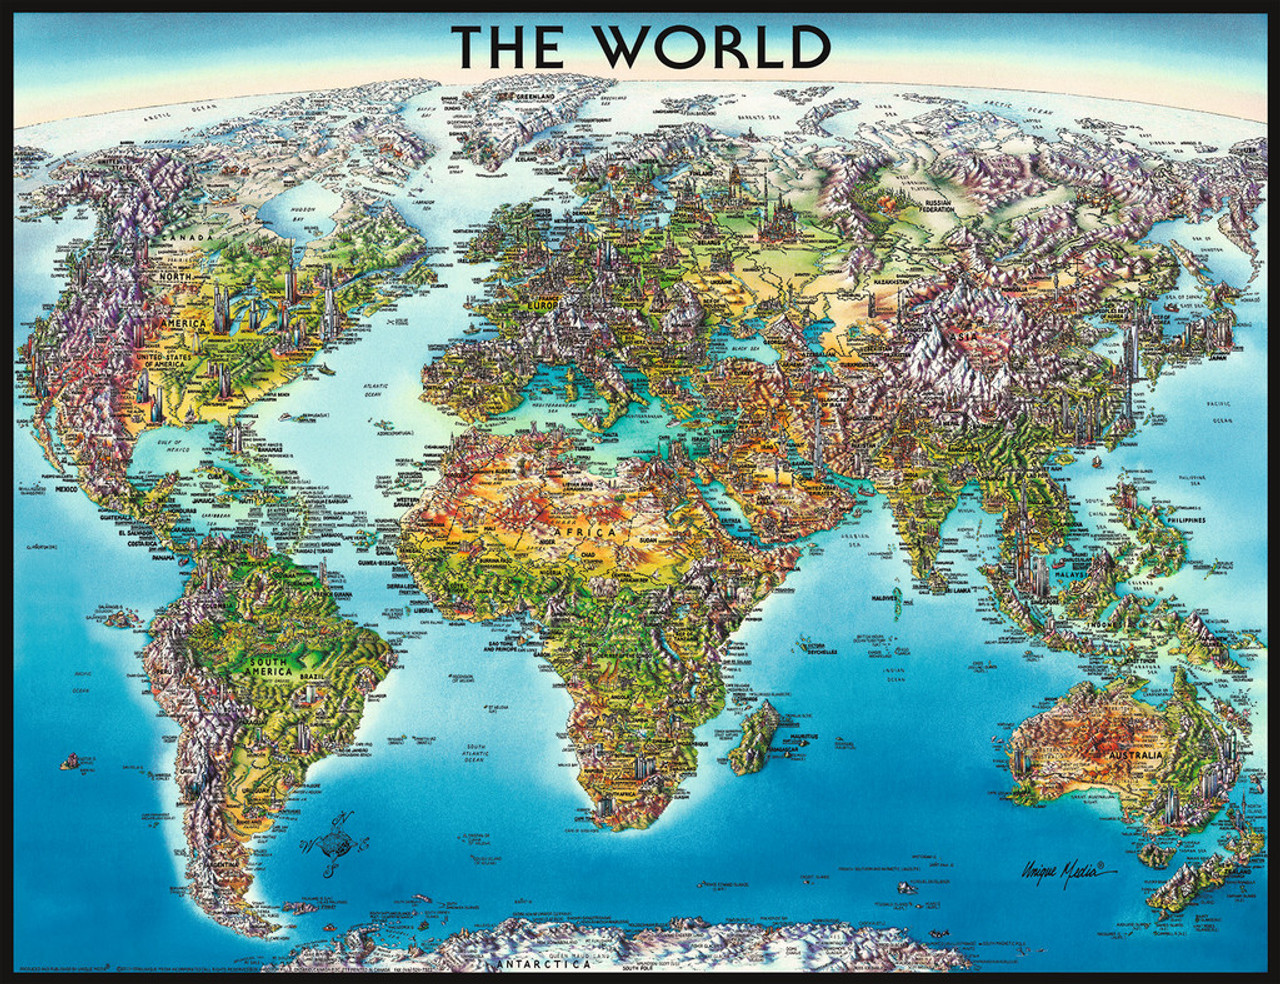 Ravensburger world map jigsaw puzzle seriouspuzzles ravensburger jigsaw puzzles world map gumiabroncs Image collections